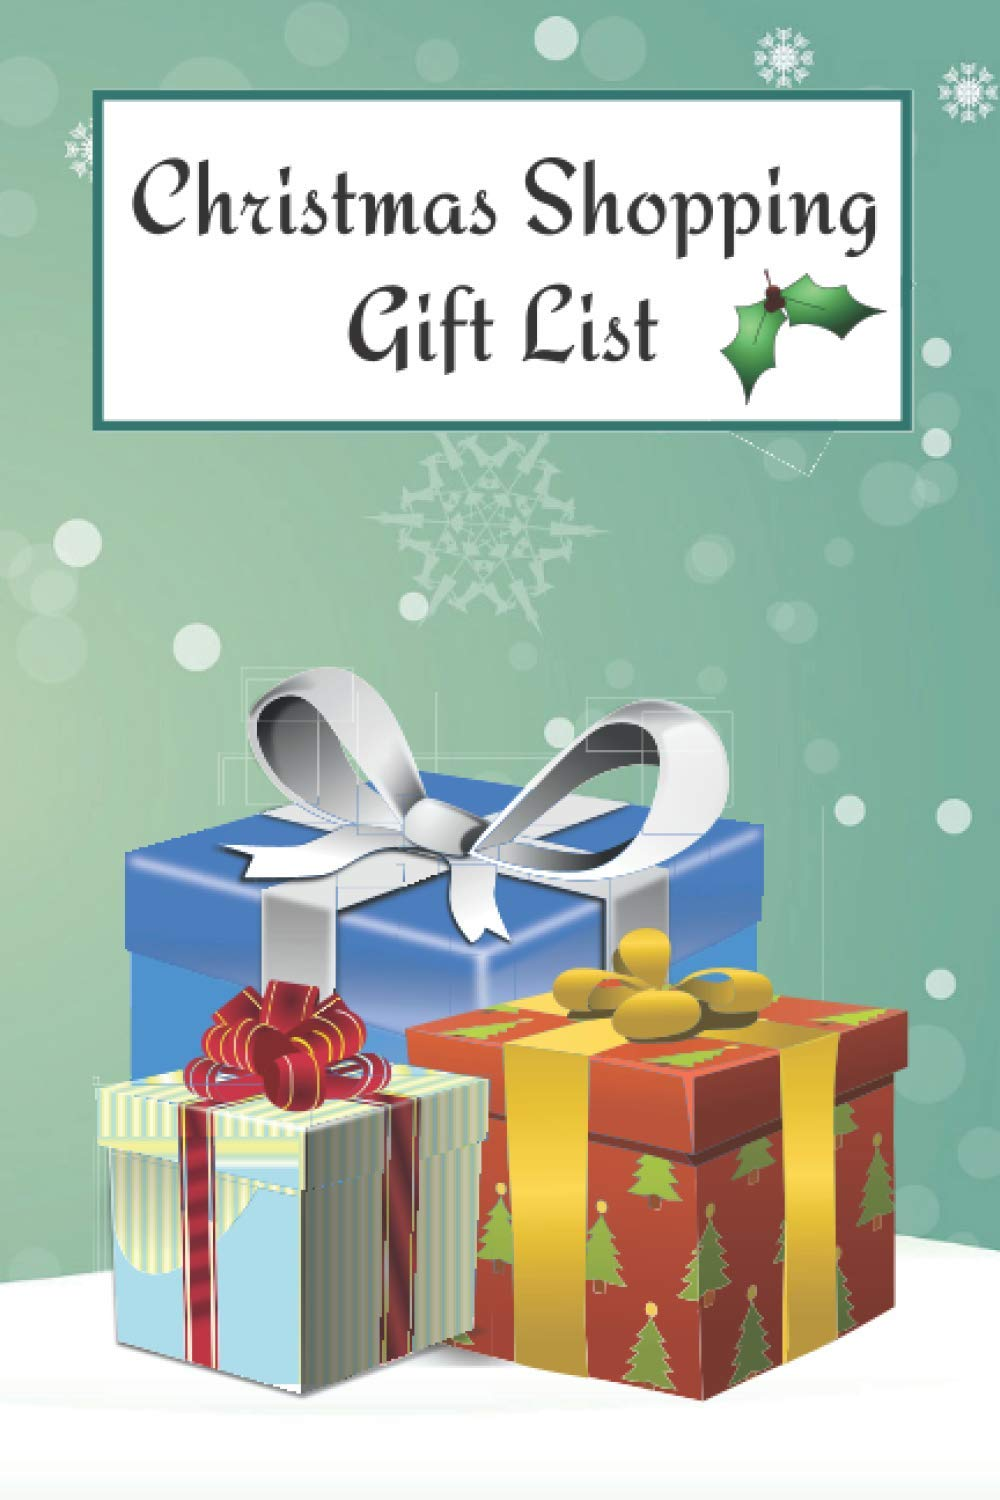 Christmas Shopping Gift List Holiday Season Organizer Tracker Planner For Gifts Ideas You Want To Buy Daicop Sj 9798683393823 Amazon Com Books